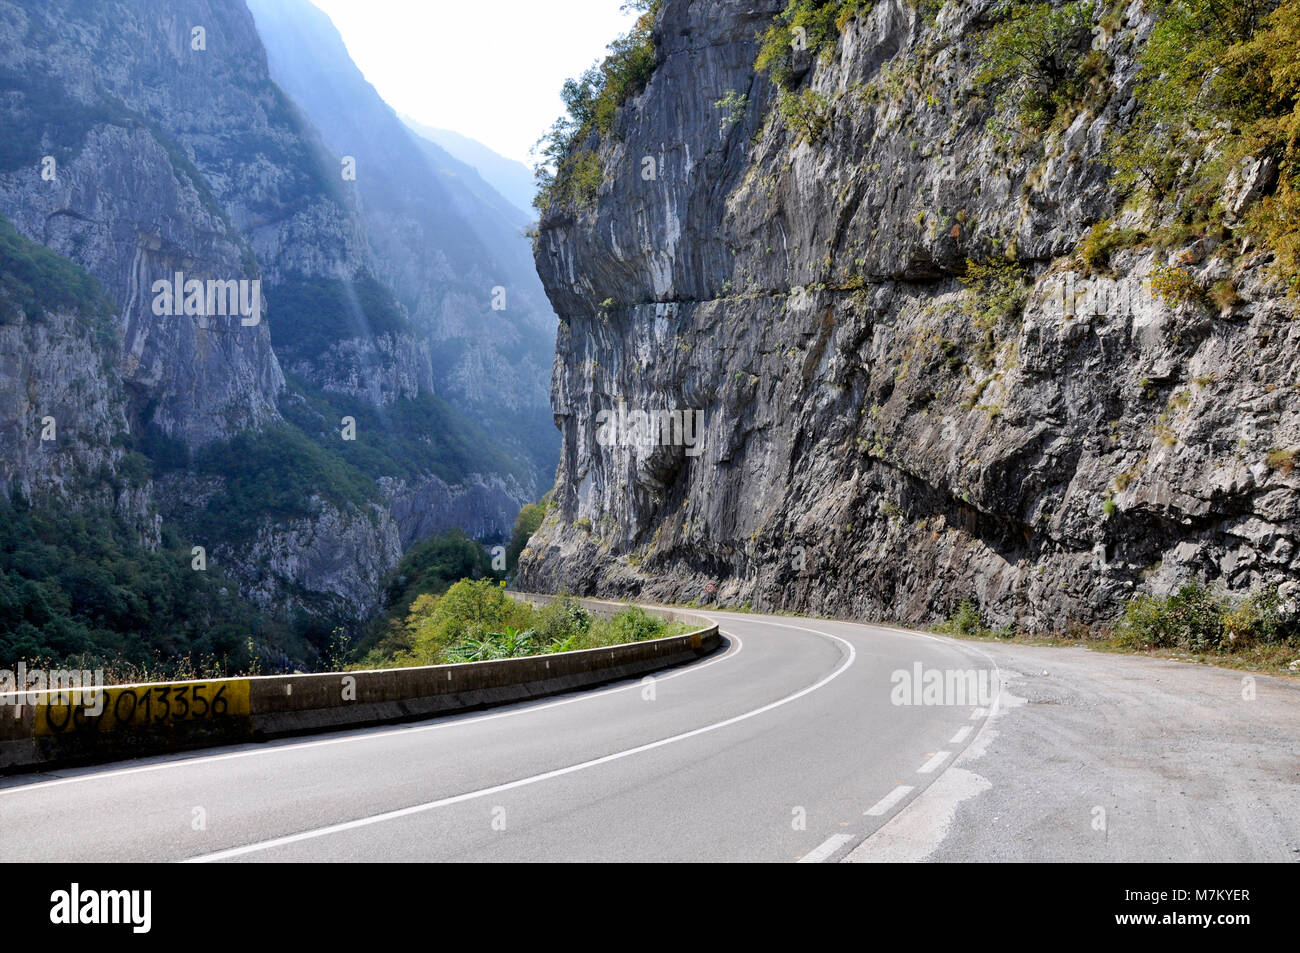 A picturesque journey along the roads of Montenegro among rocks and tunnels. Stock Photo